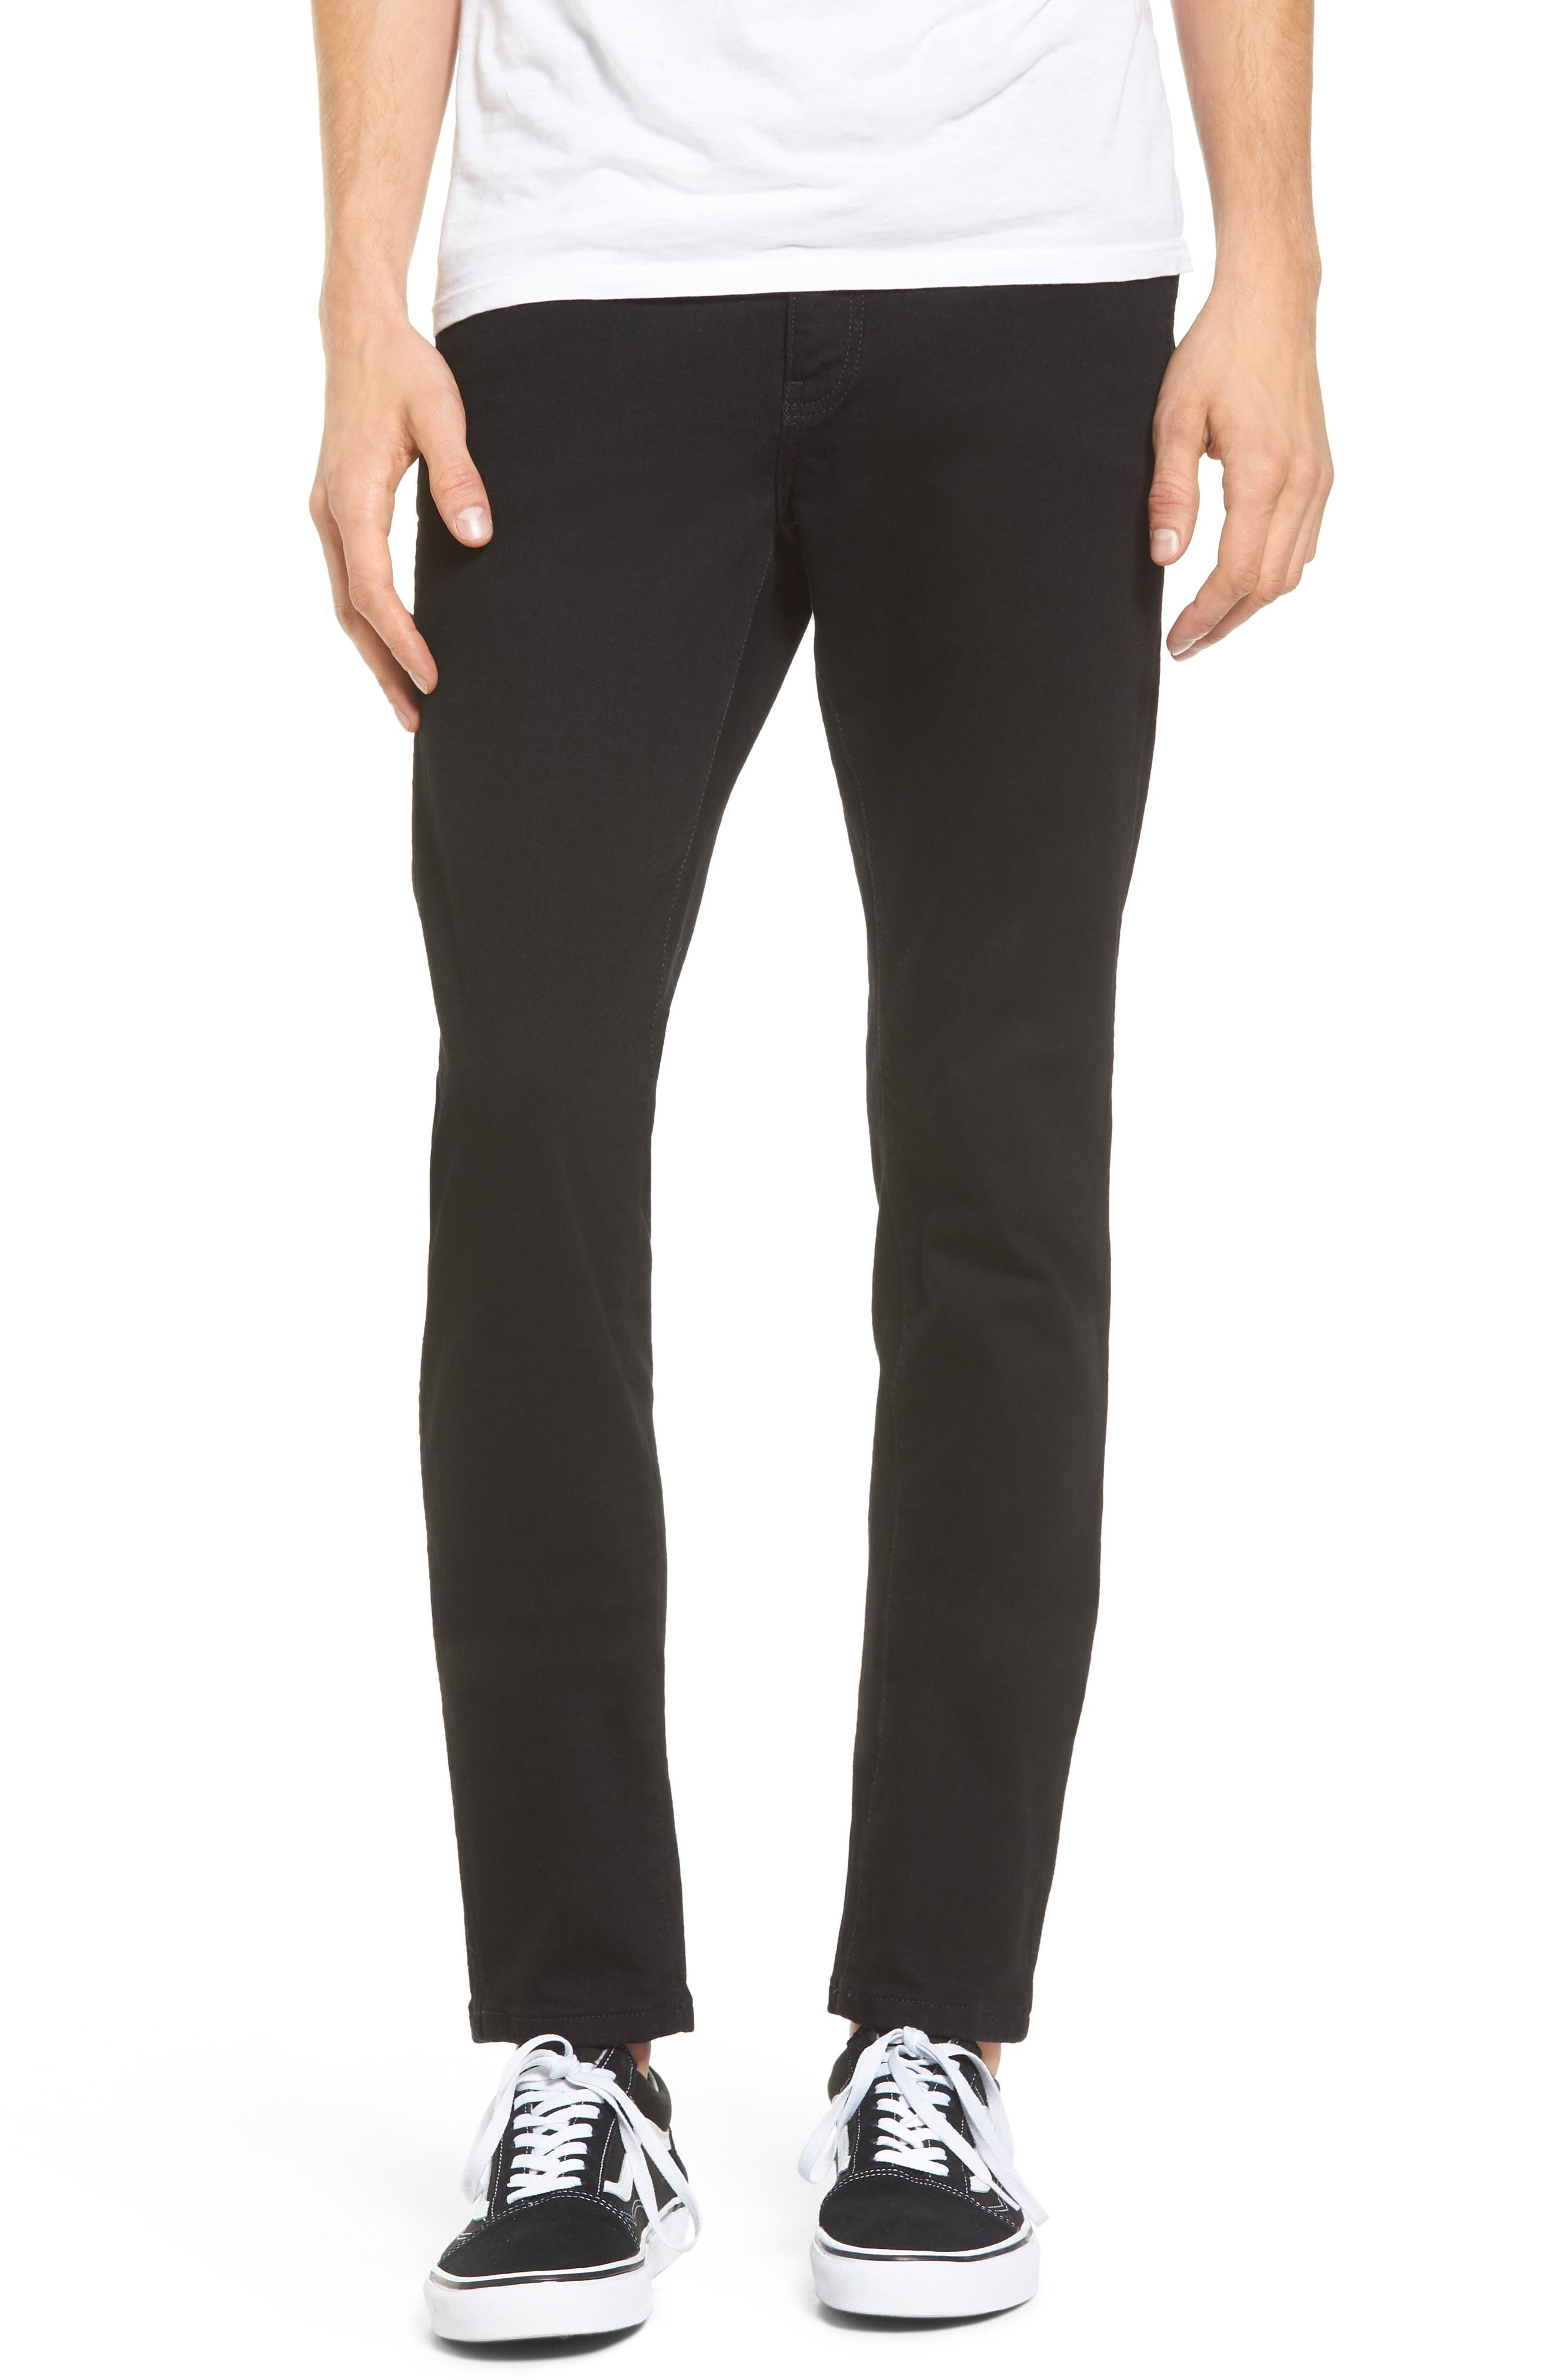 Snap Skinny Fit Jeans,                         Main,                         color, ORGANIC BLACK